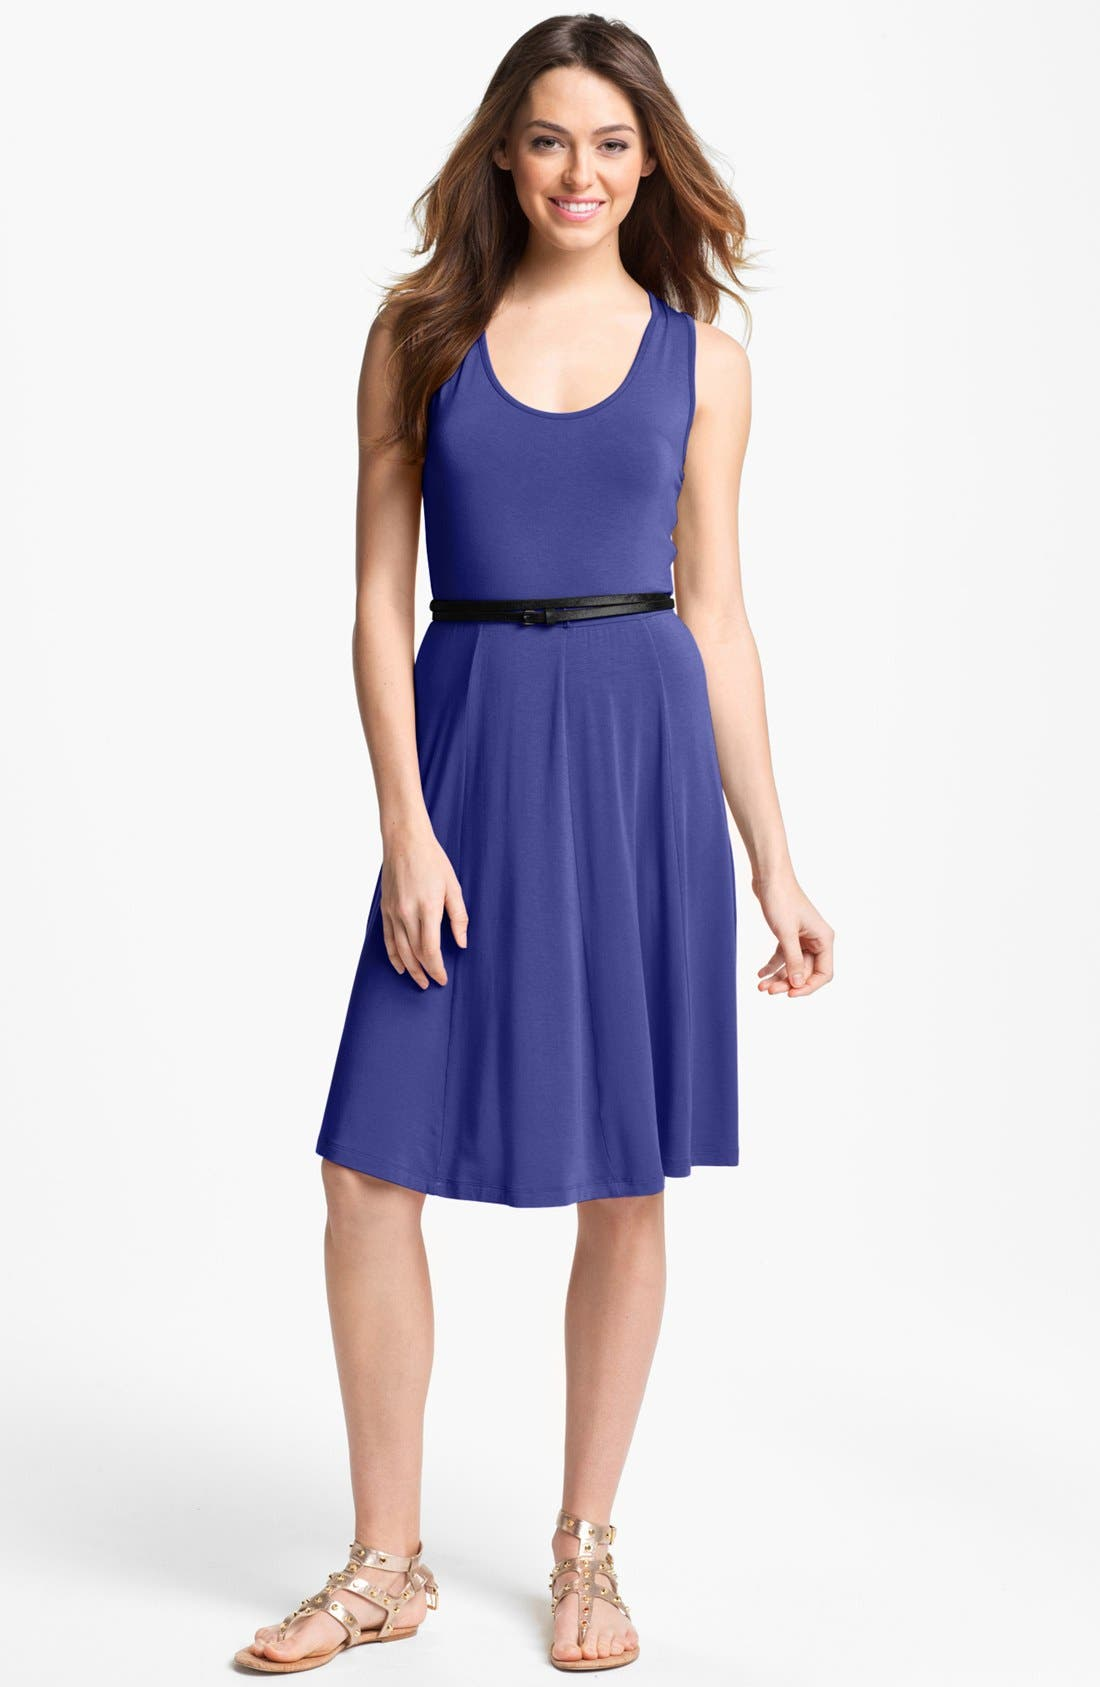 Alternate Image 1 Selected - Calvin Klein Sleeveless A-Line Dress